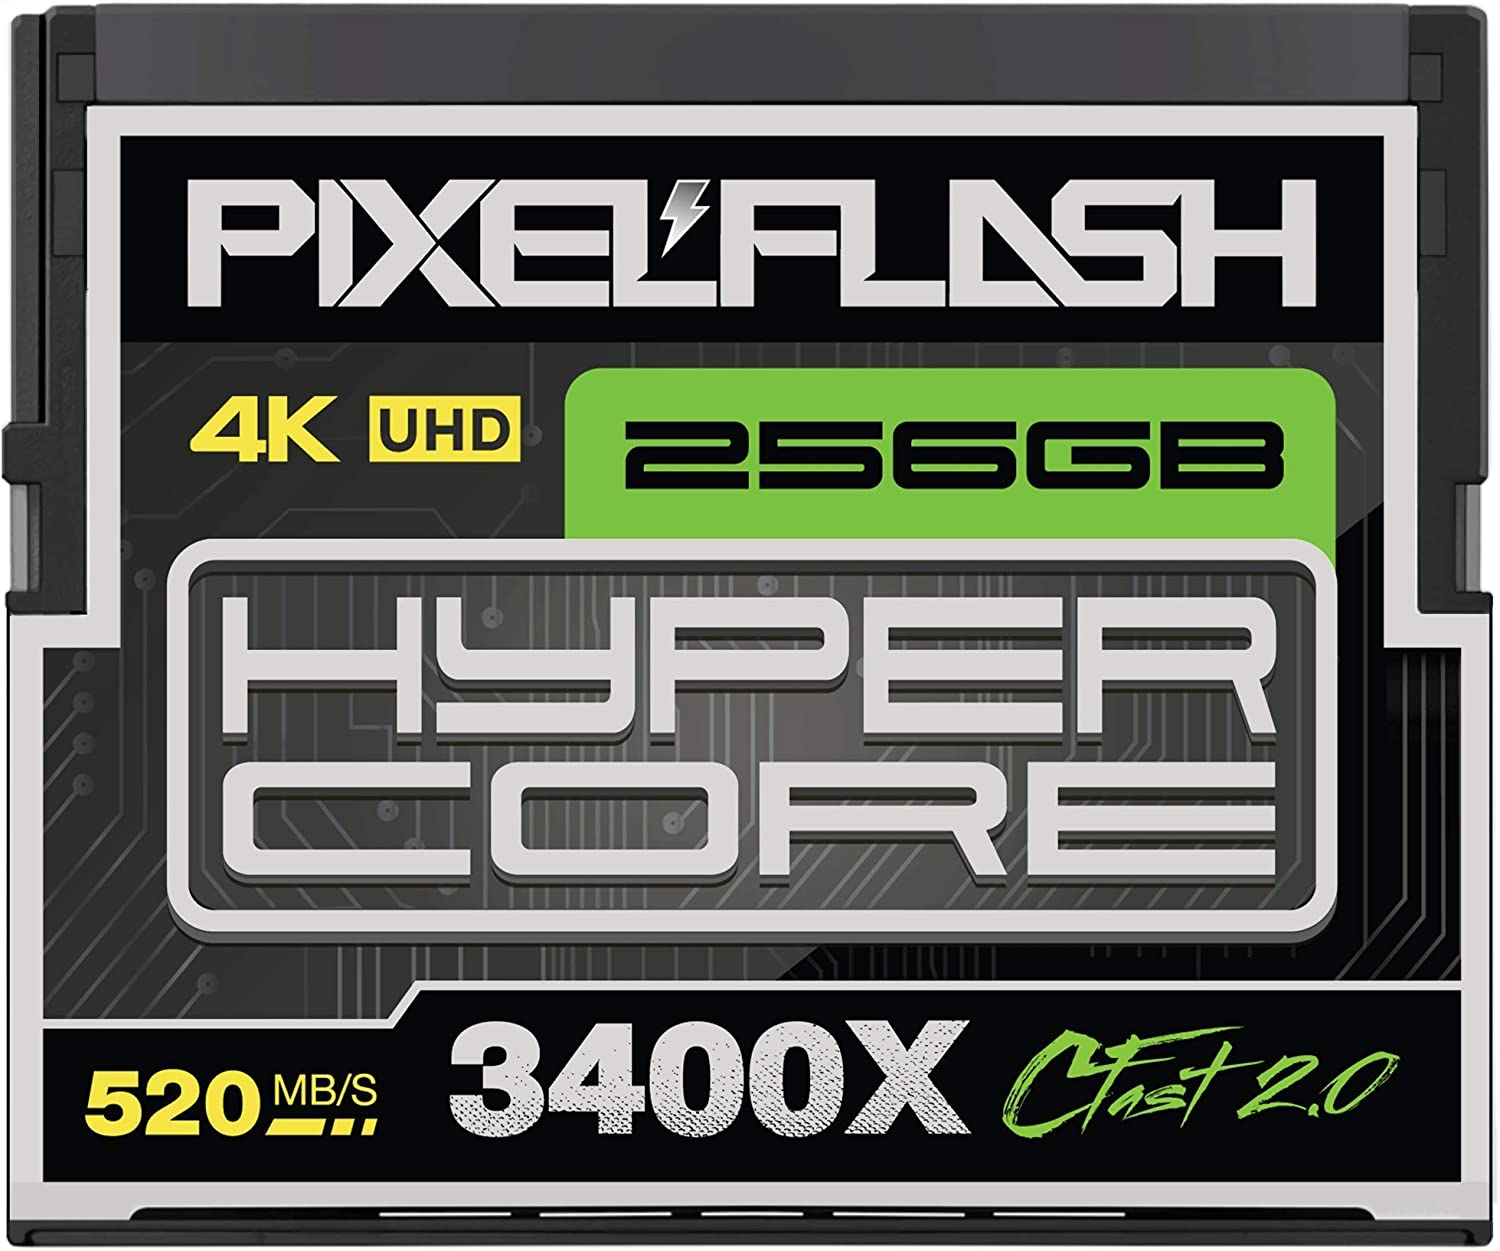 256GB PixelFlash Cfast 2.0 Memory Card 3400X Standard Version for Canon C300, XC10, XC15, Hasselblad, Blackmagic Cinema 4K, Phase One, Leica, and More [2020 Edition][American Brand]